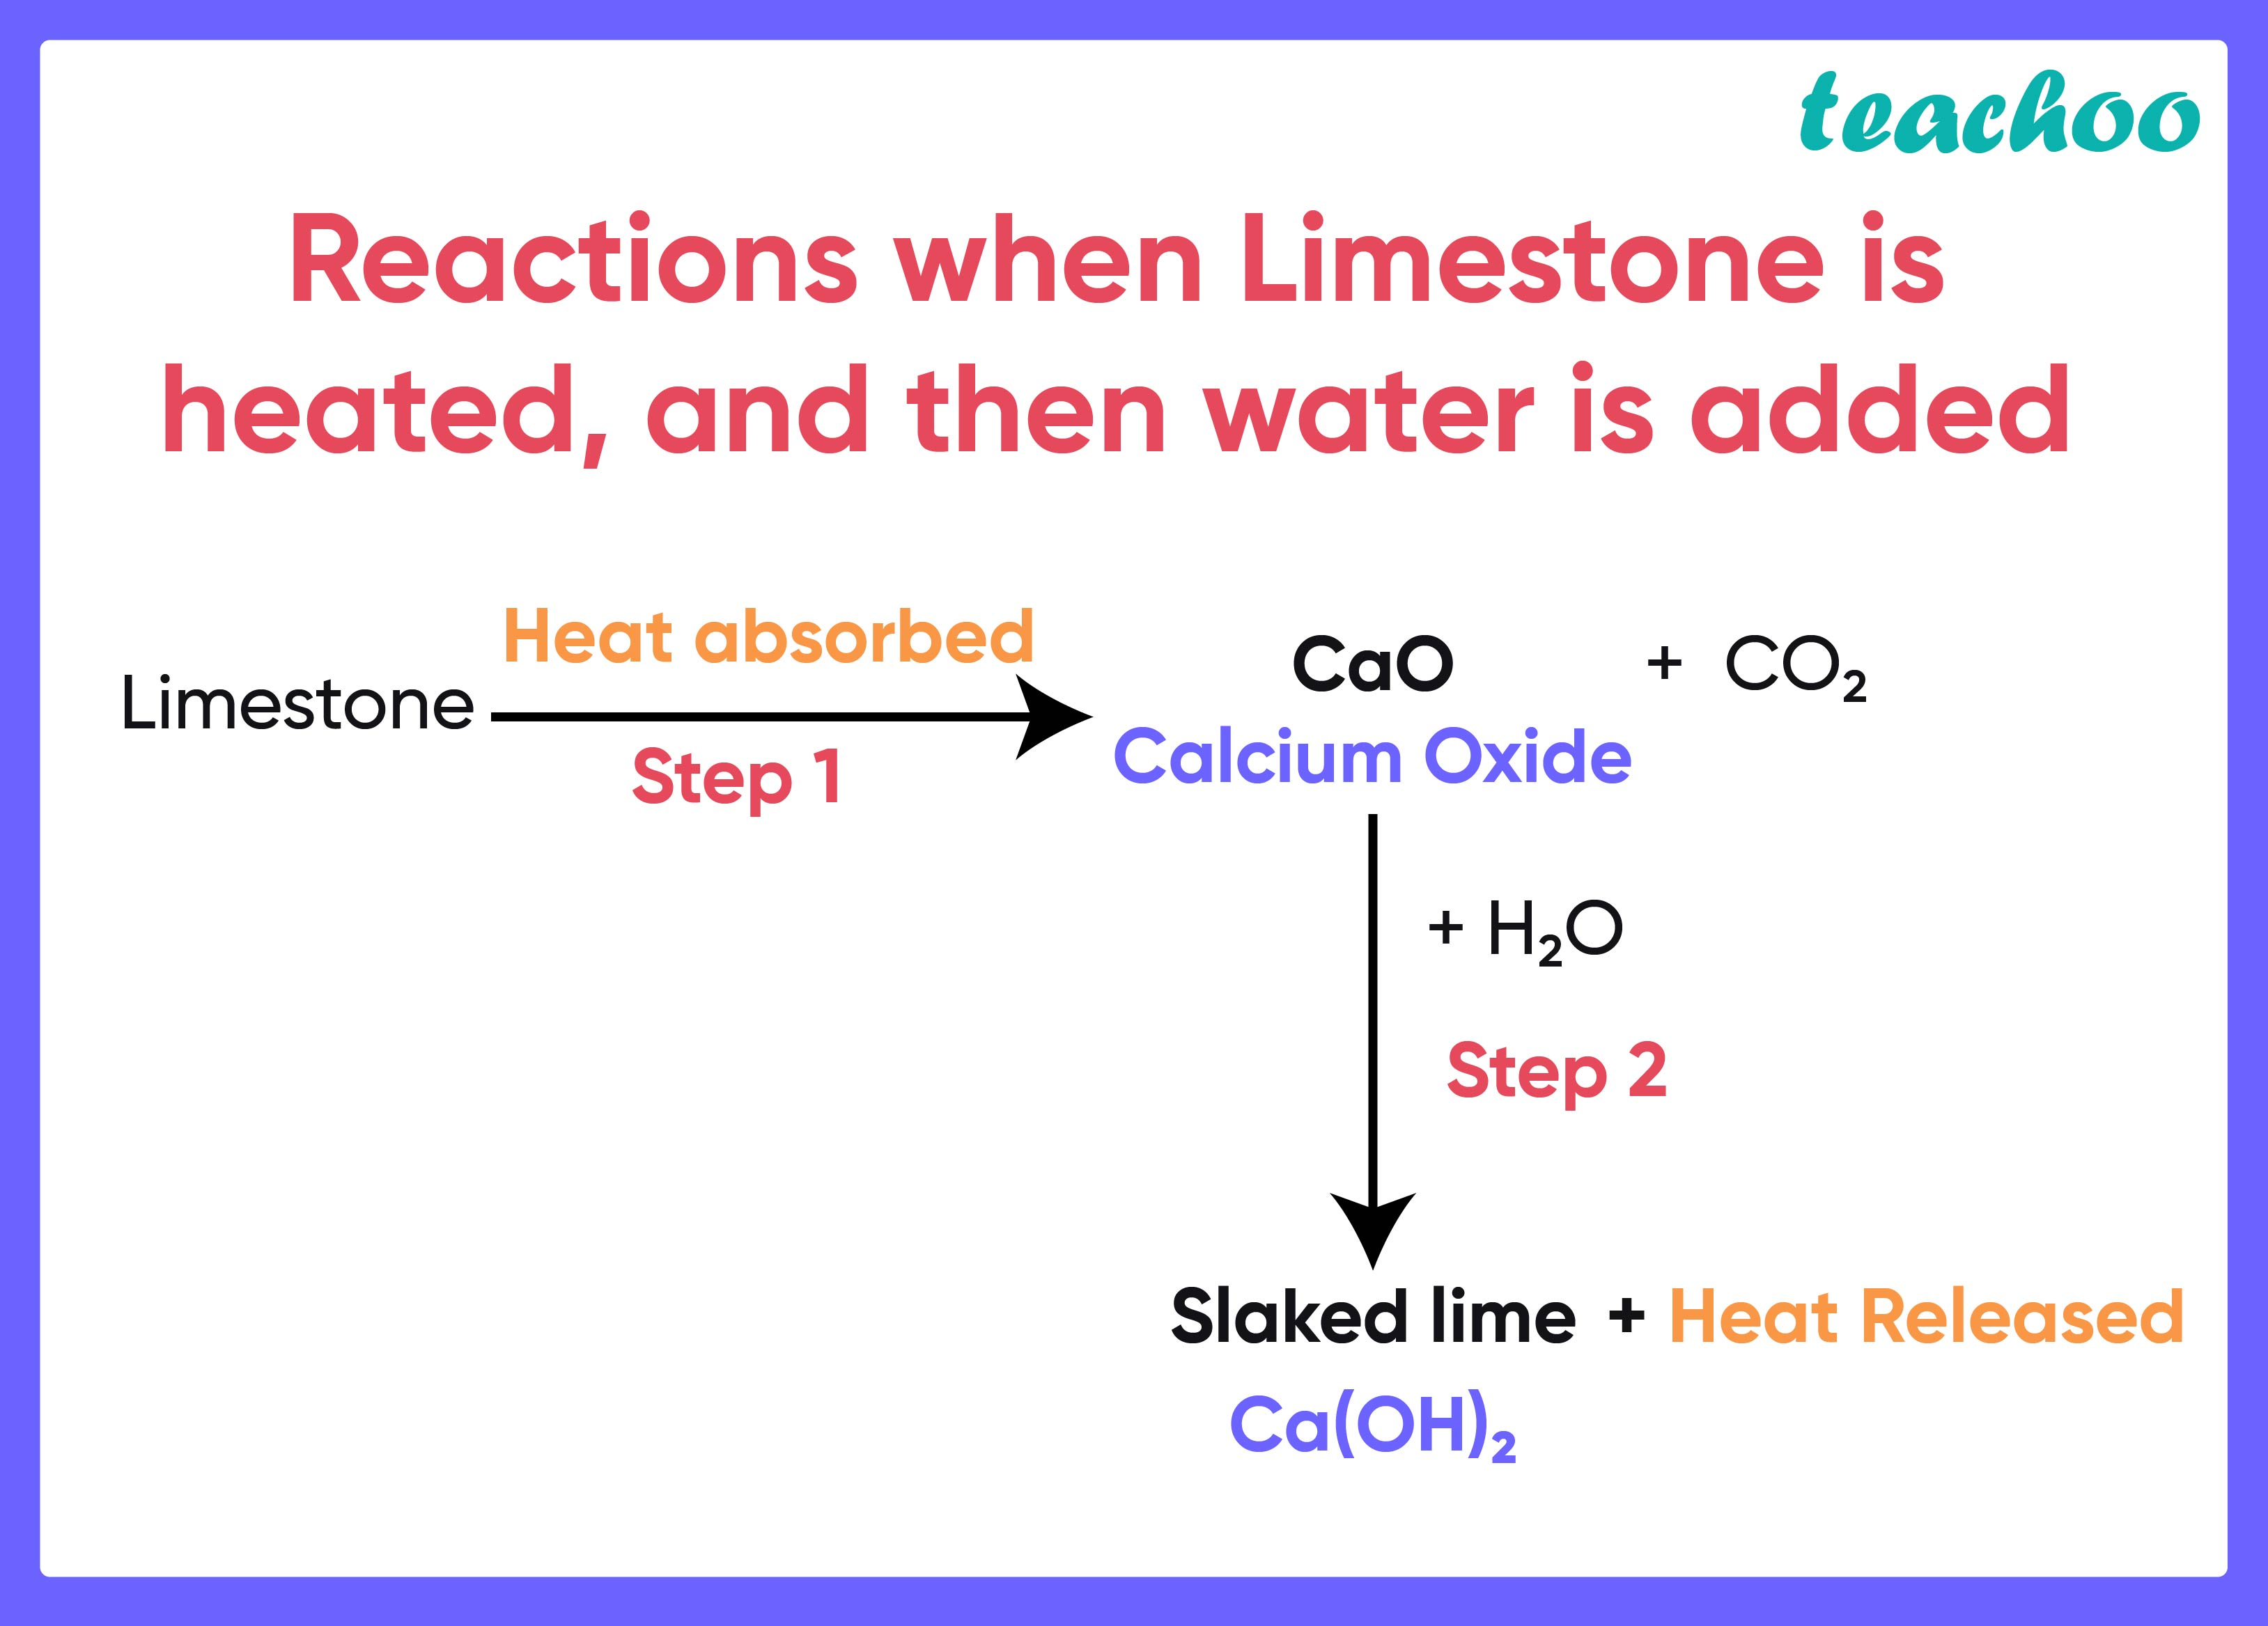 Reactions when Limestone is heated, and then water is added - Teachoo.jpg